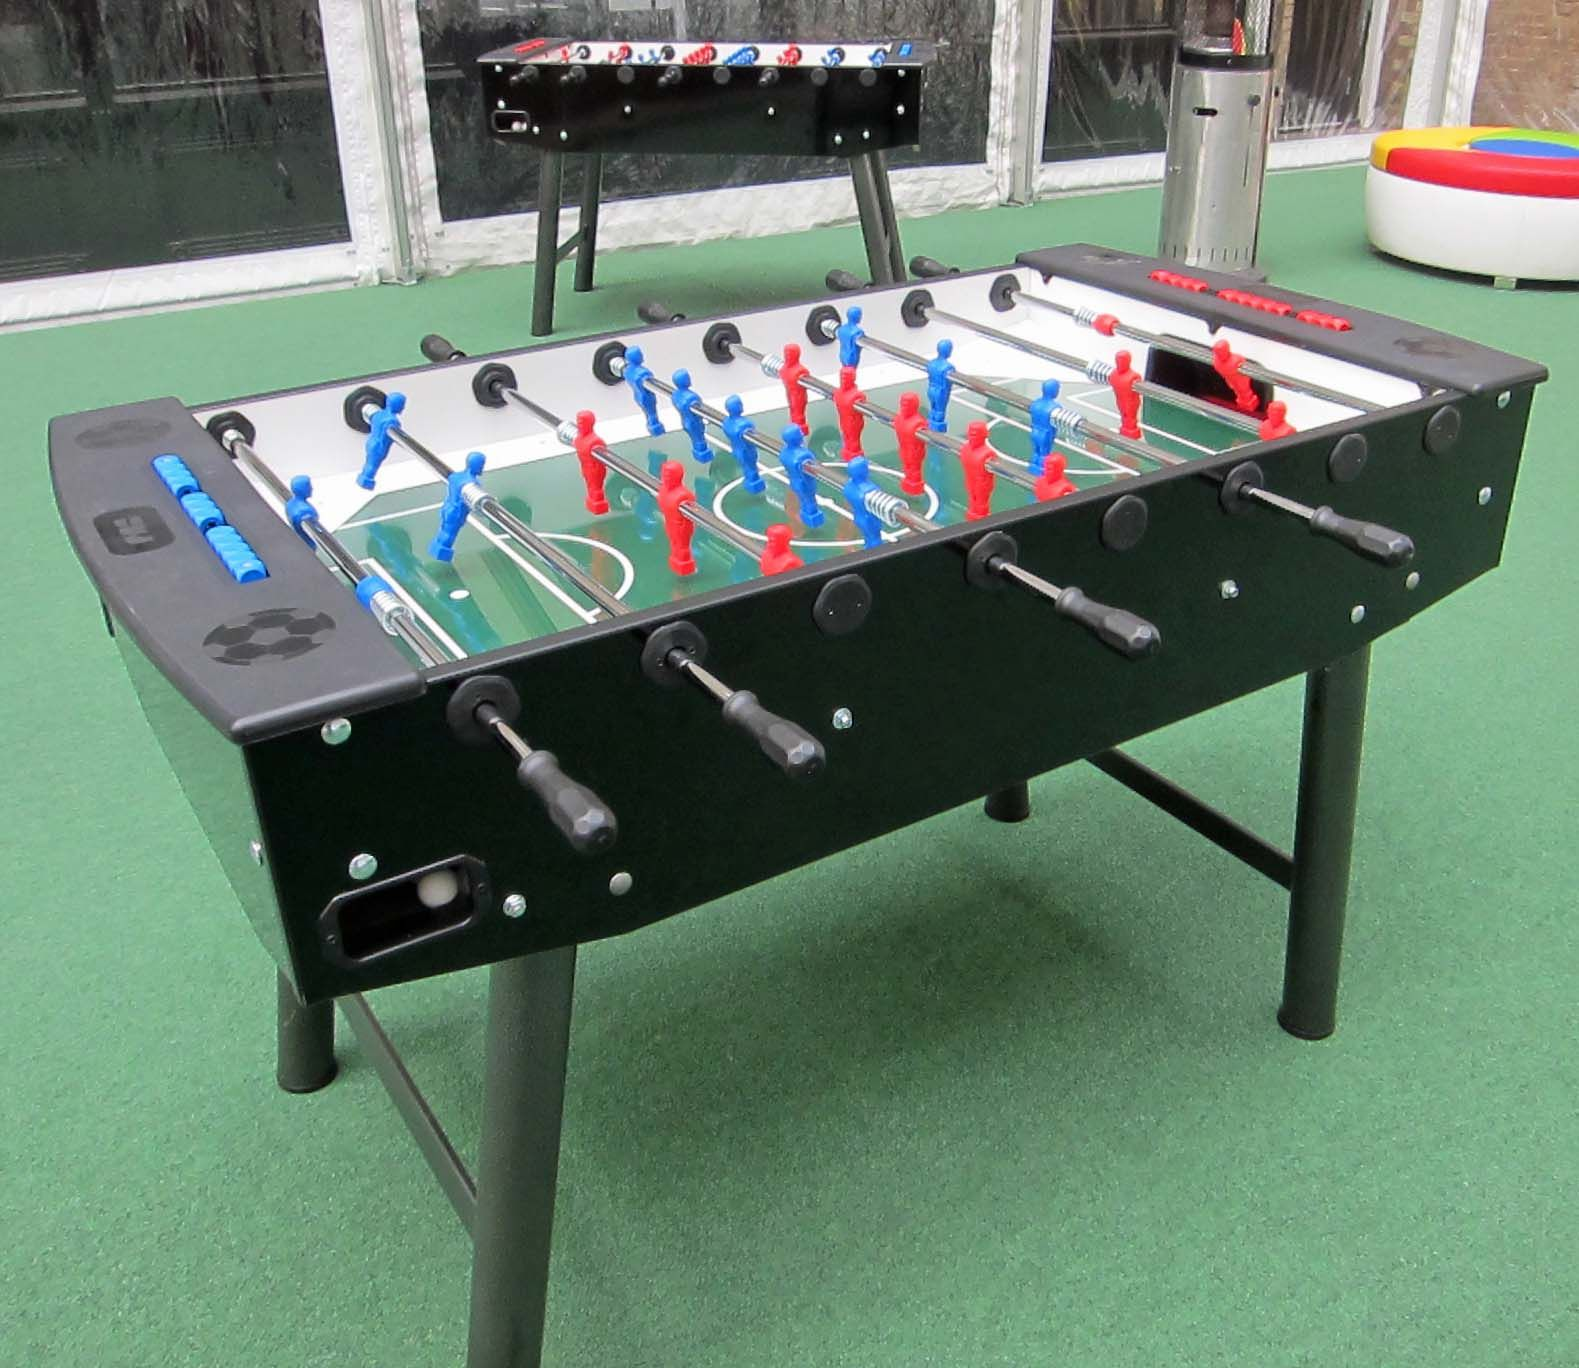 Event for Google in London, using table football supplied